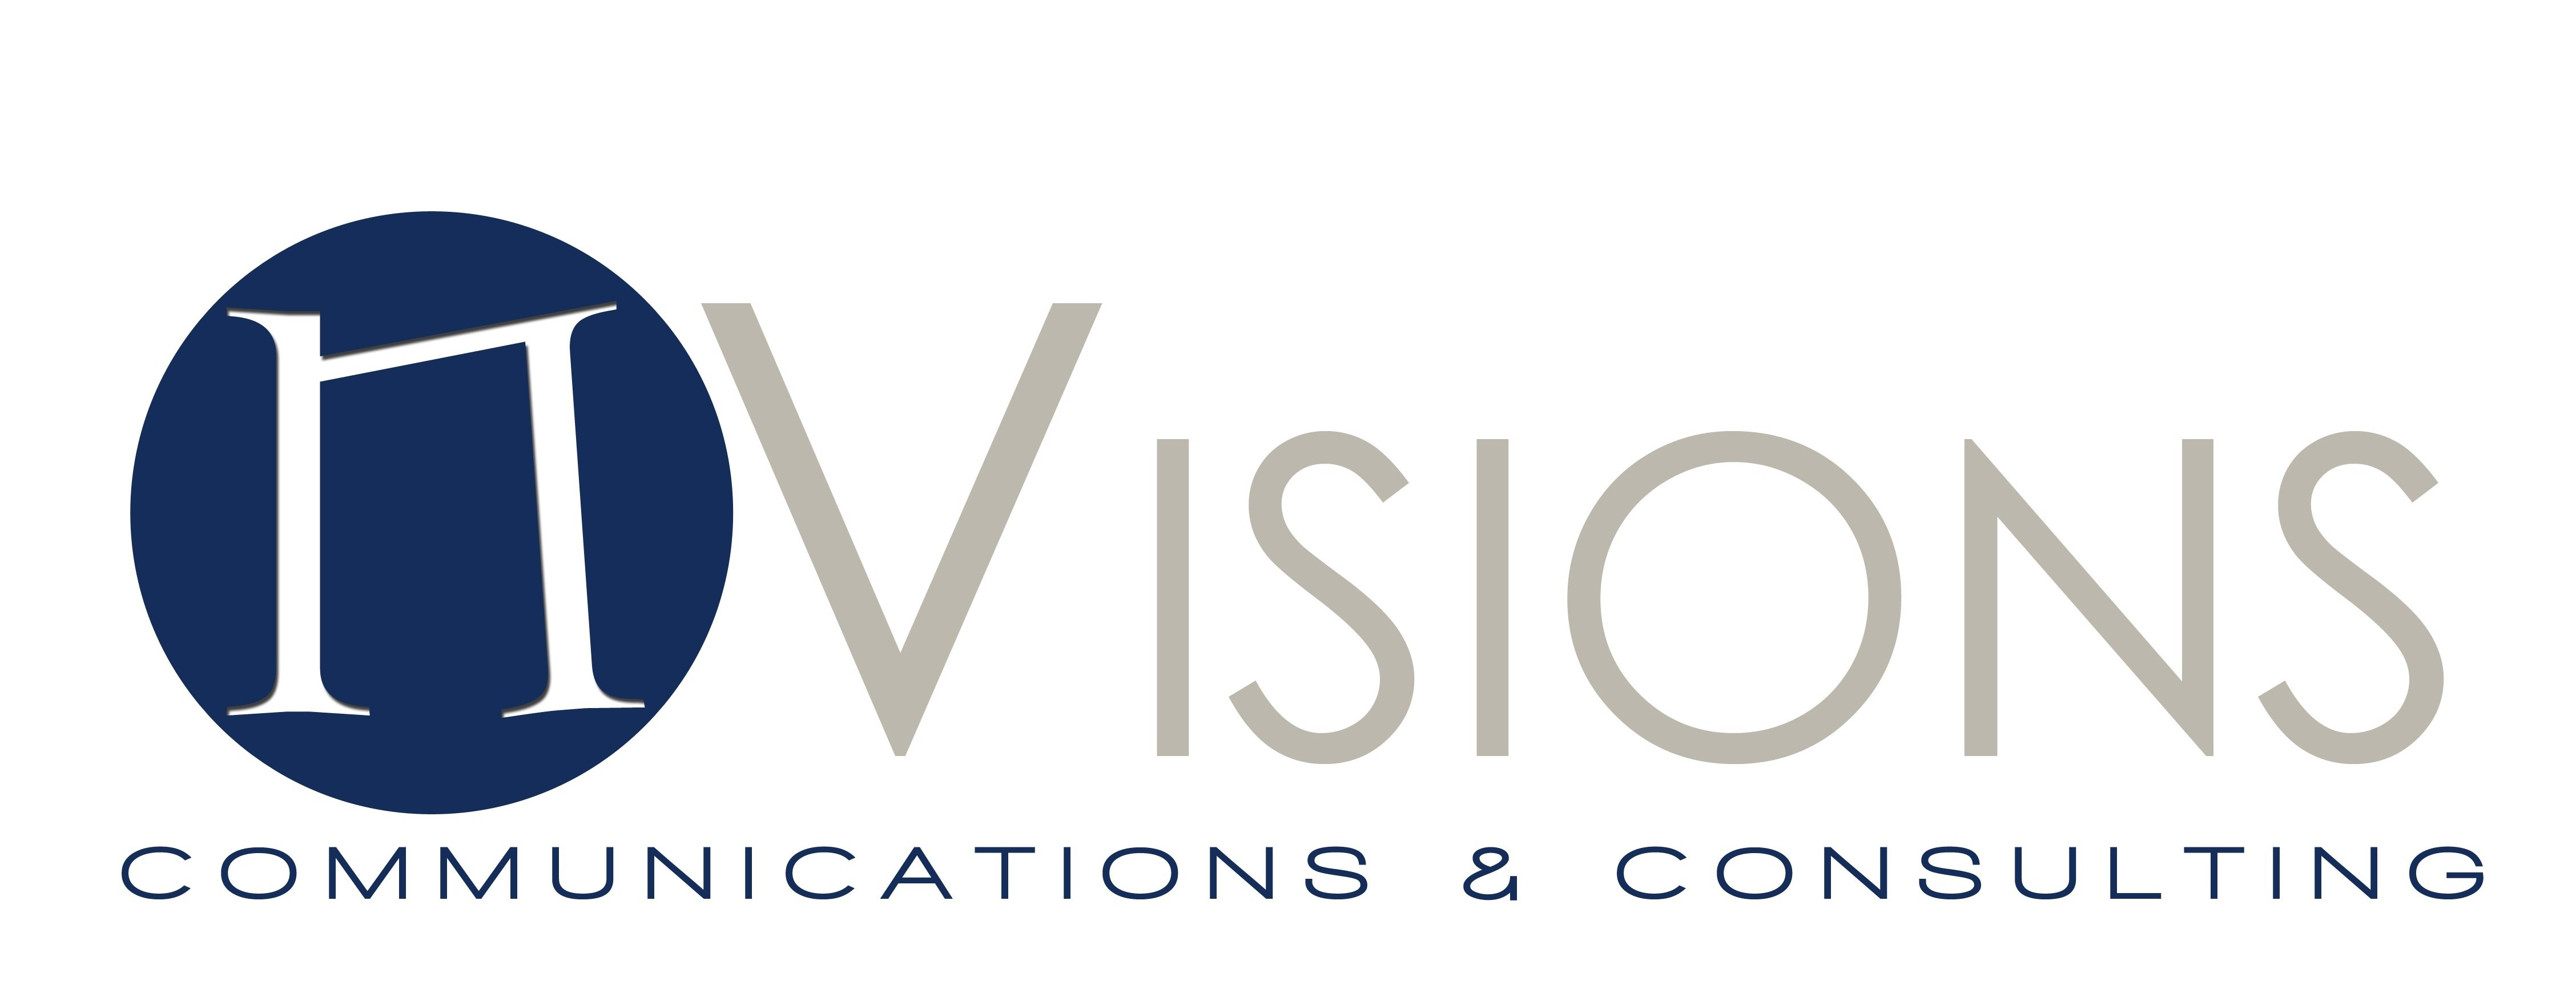 NVisions Communications & Consulting